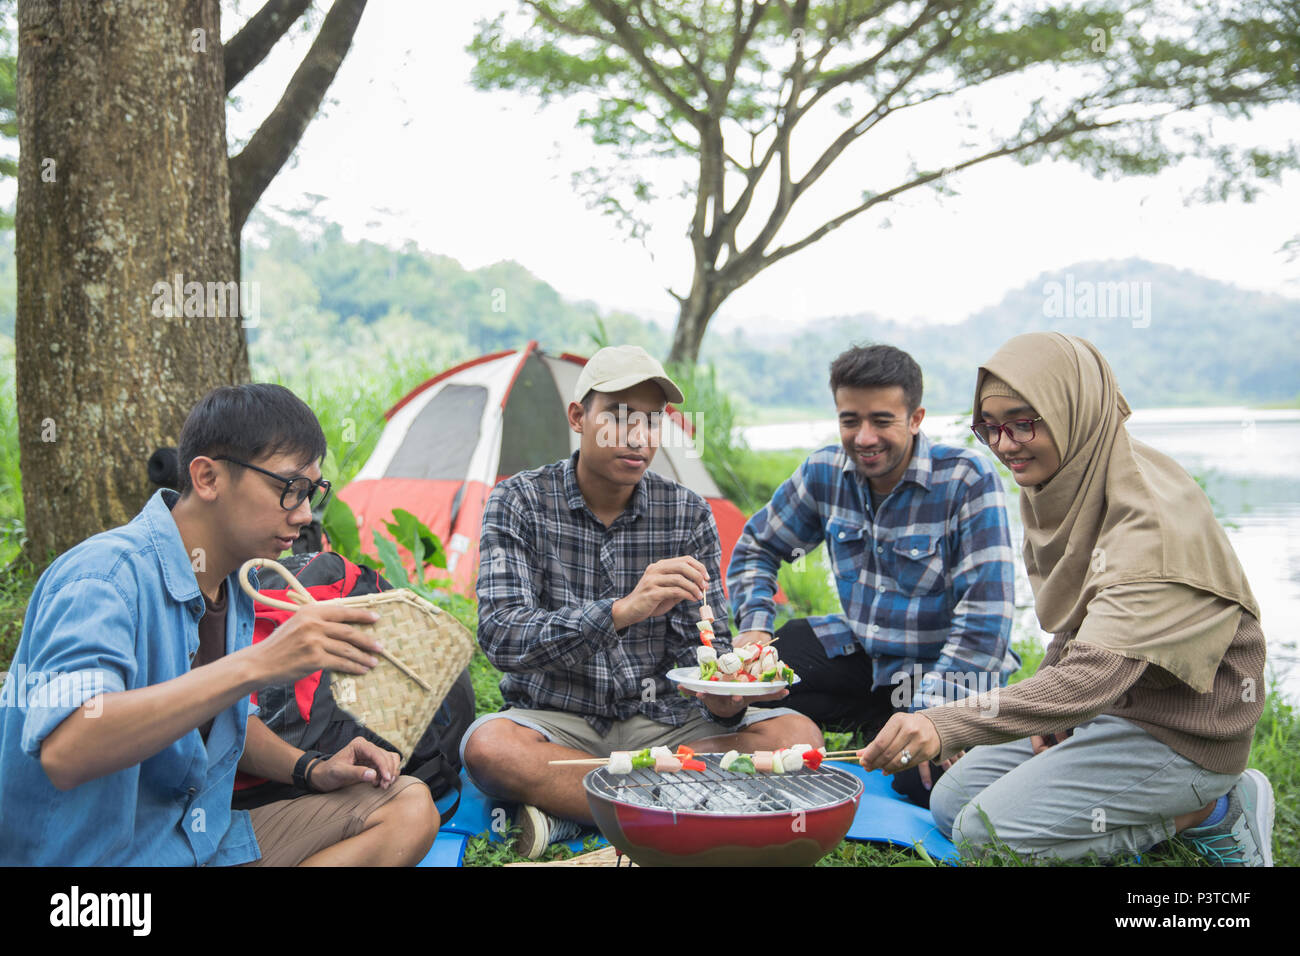 Friends making a barbecue together outdoors - Stock Image